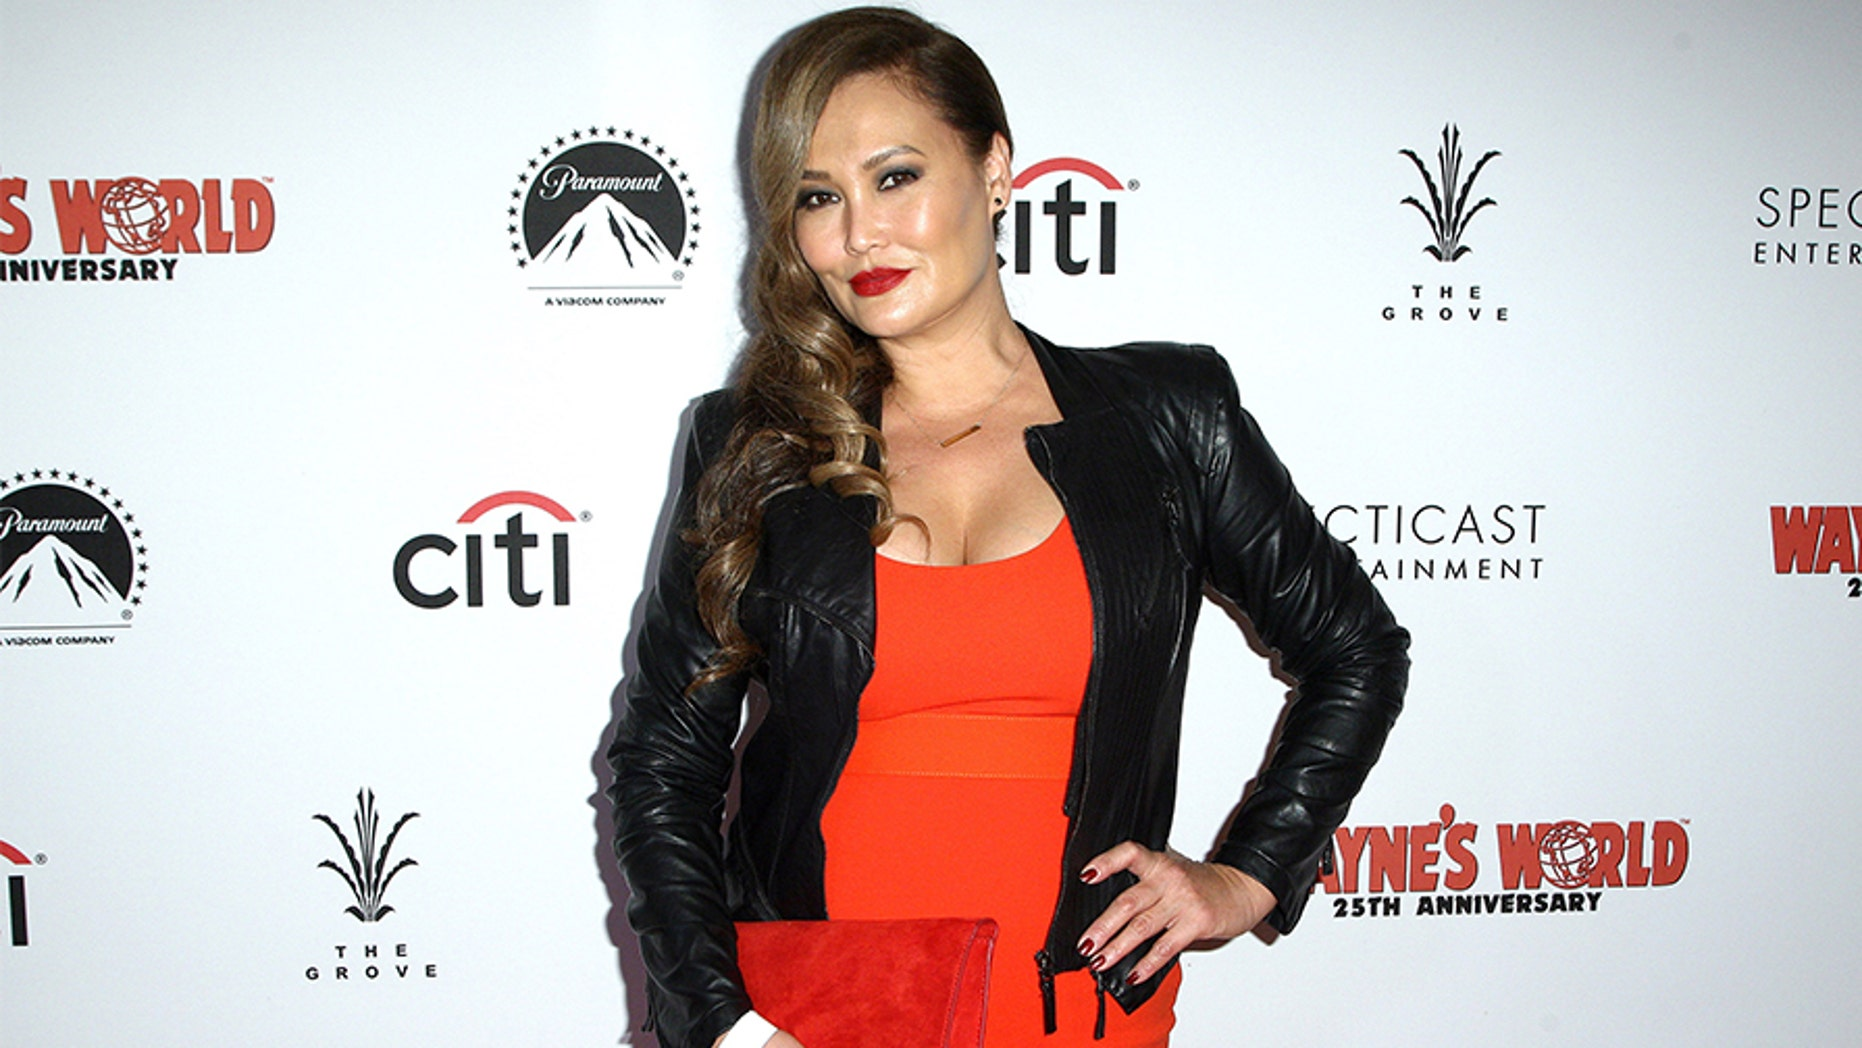 """Tia Carrere attends the """"Wayne's World"""" 25th Anniversary Panel Discussion at Pacific Theaters at the Grove on Jan. 9, 2017 in Los Angeles."""